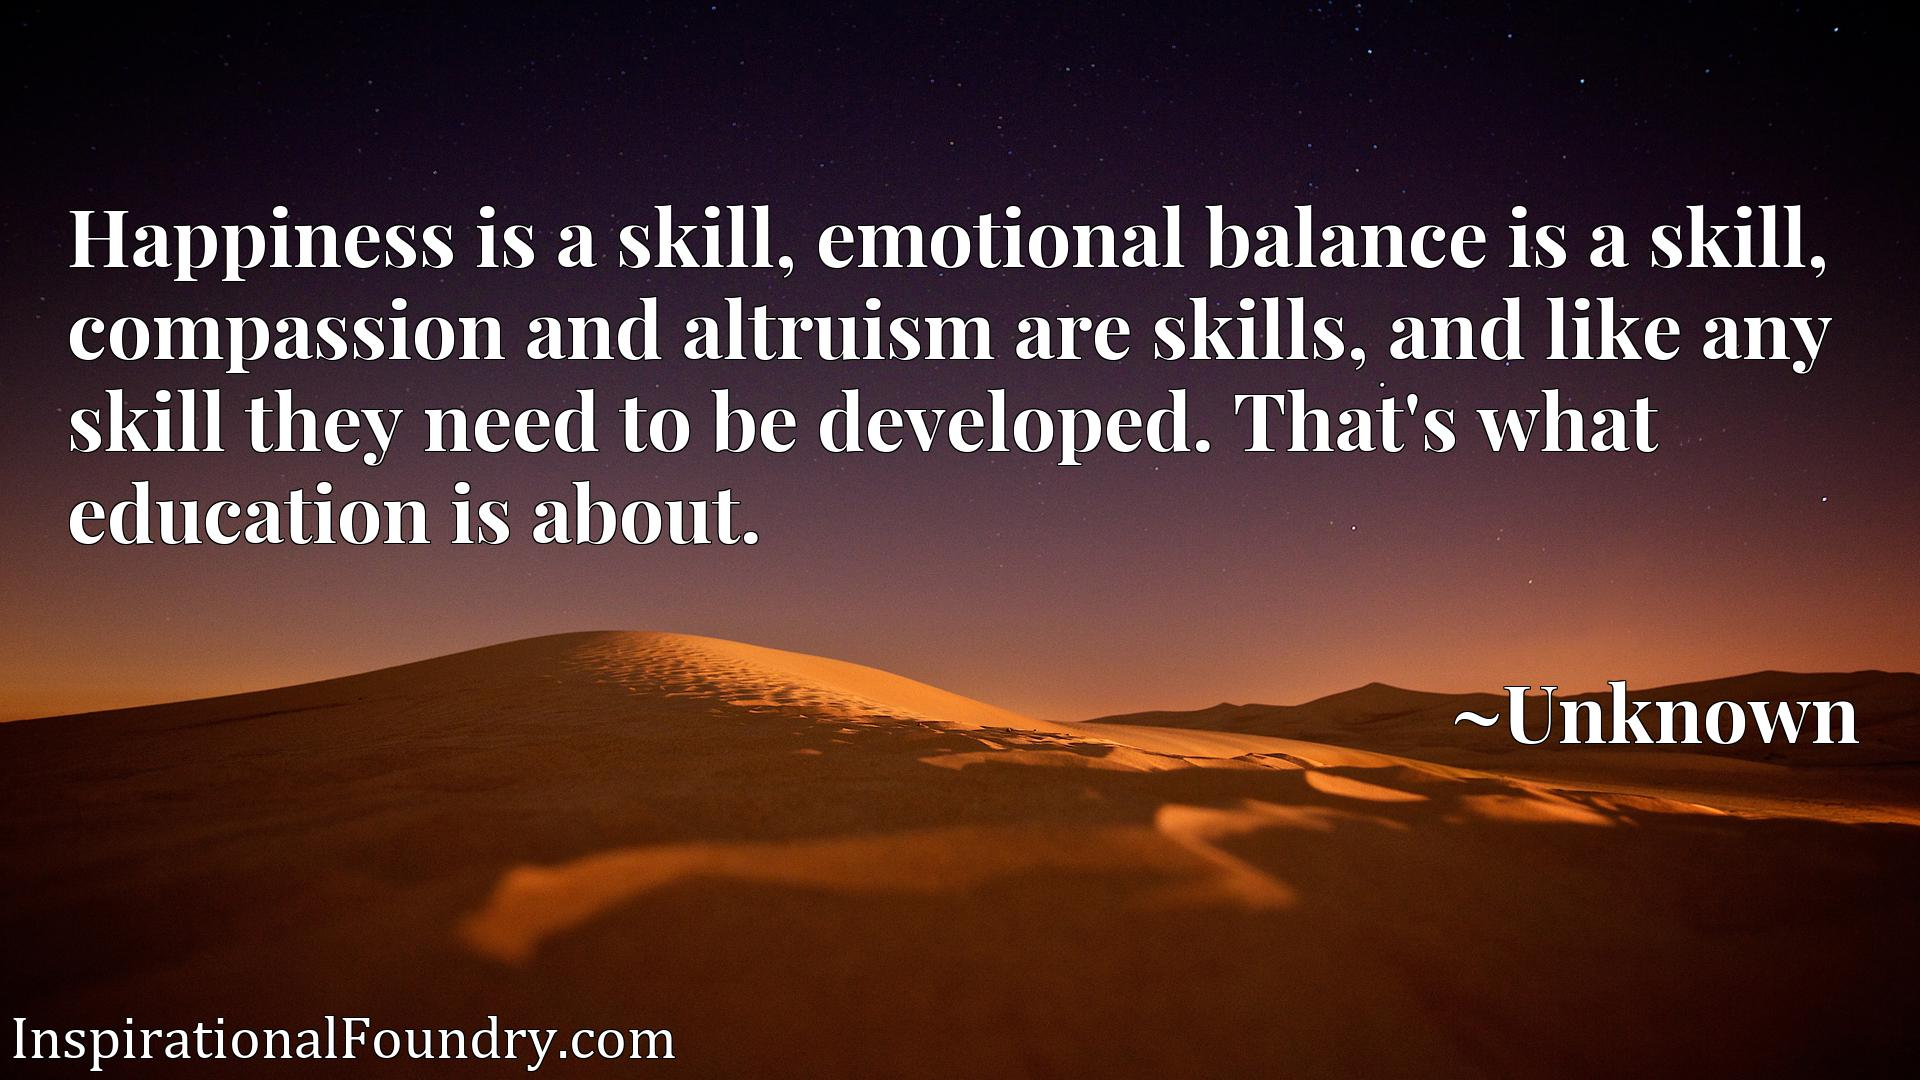 Happiness is a skill, emotional balance is a skill, compassion and altruism are skills, and like any skill they need to be developed. That's what education is about.